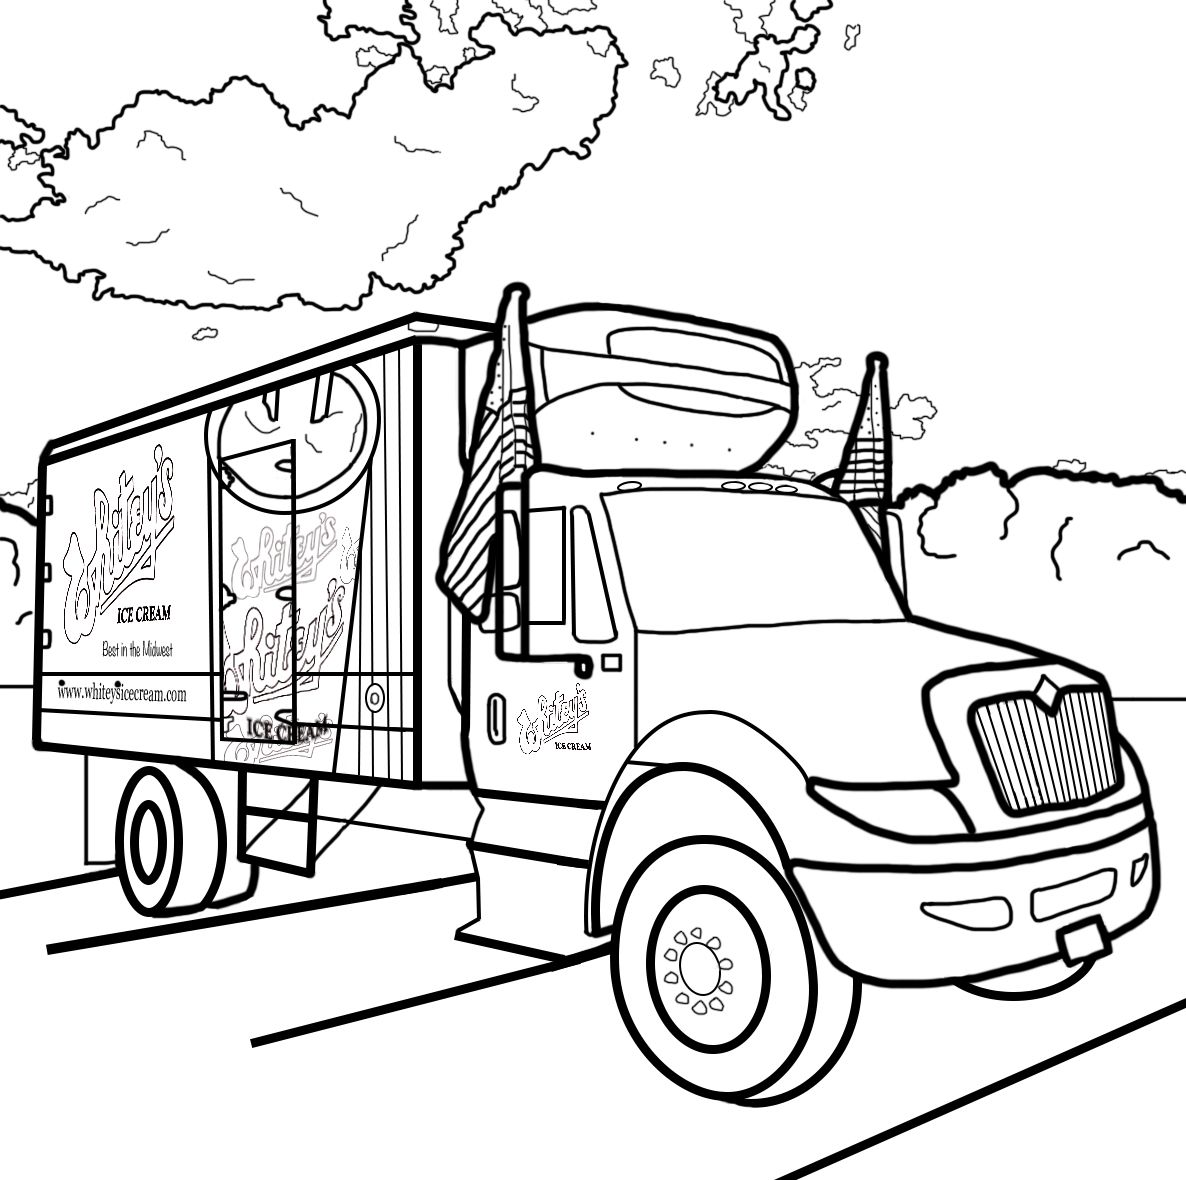 whitey ice cream coloring truck final halloween sheets free map pictures the kindergarten coloring pages Ice Cream Truck Coloring Page